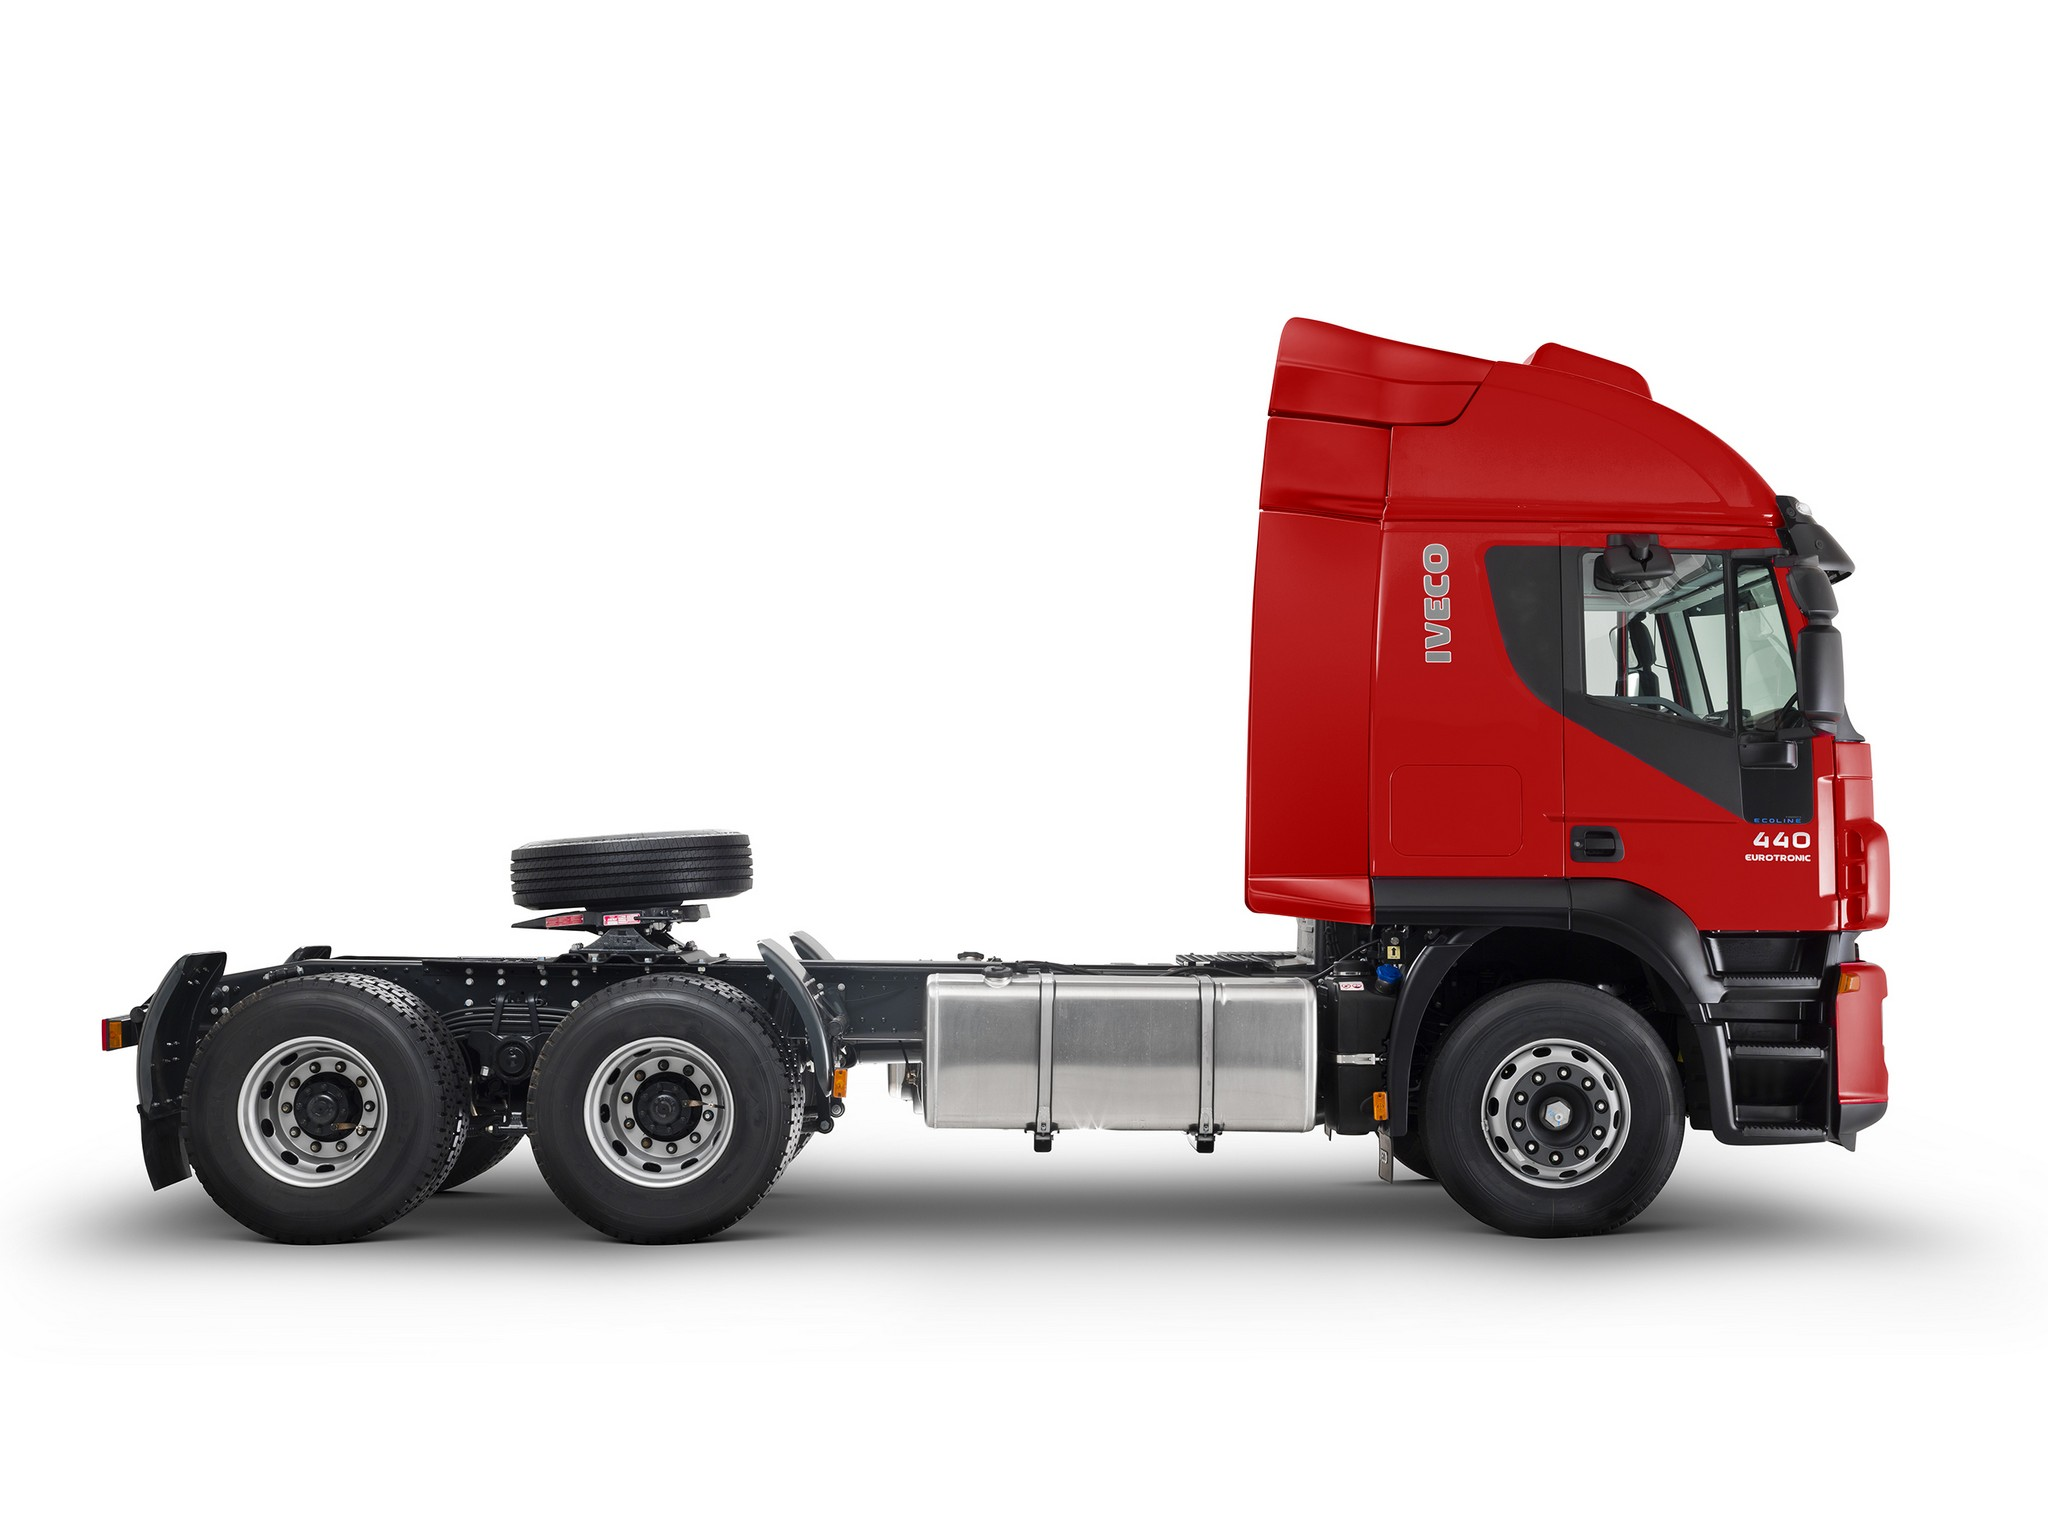 2012 Iveco Stralis 440 6x4 AT BR-spec semi tractor g wallpaper